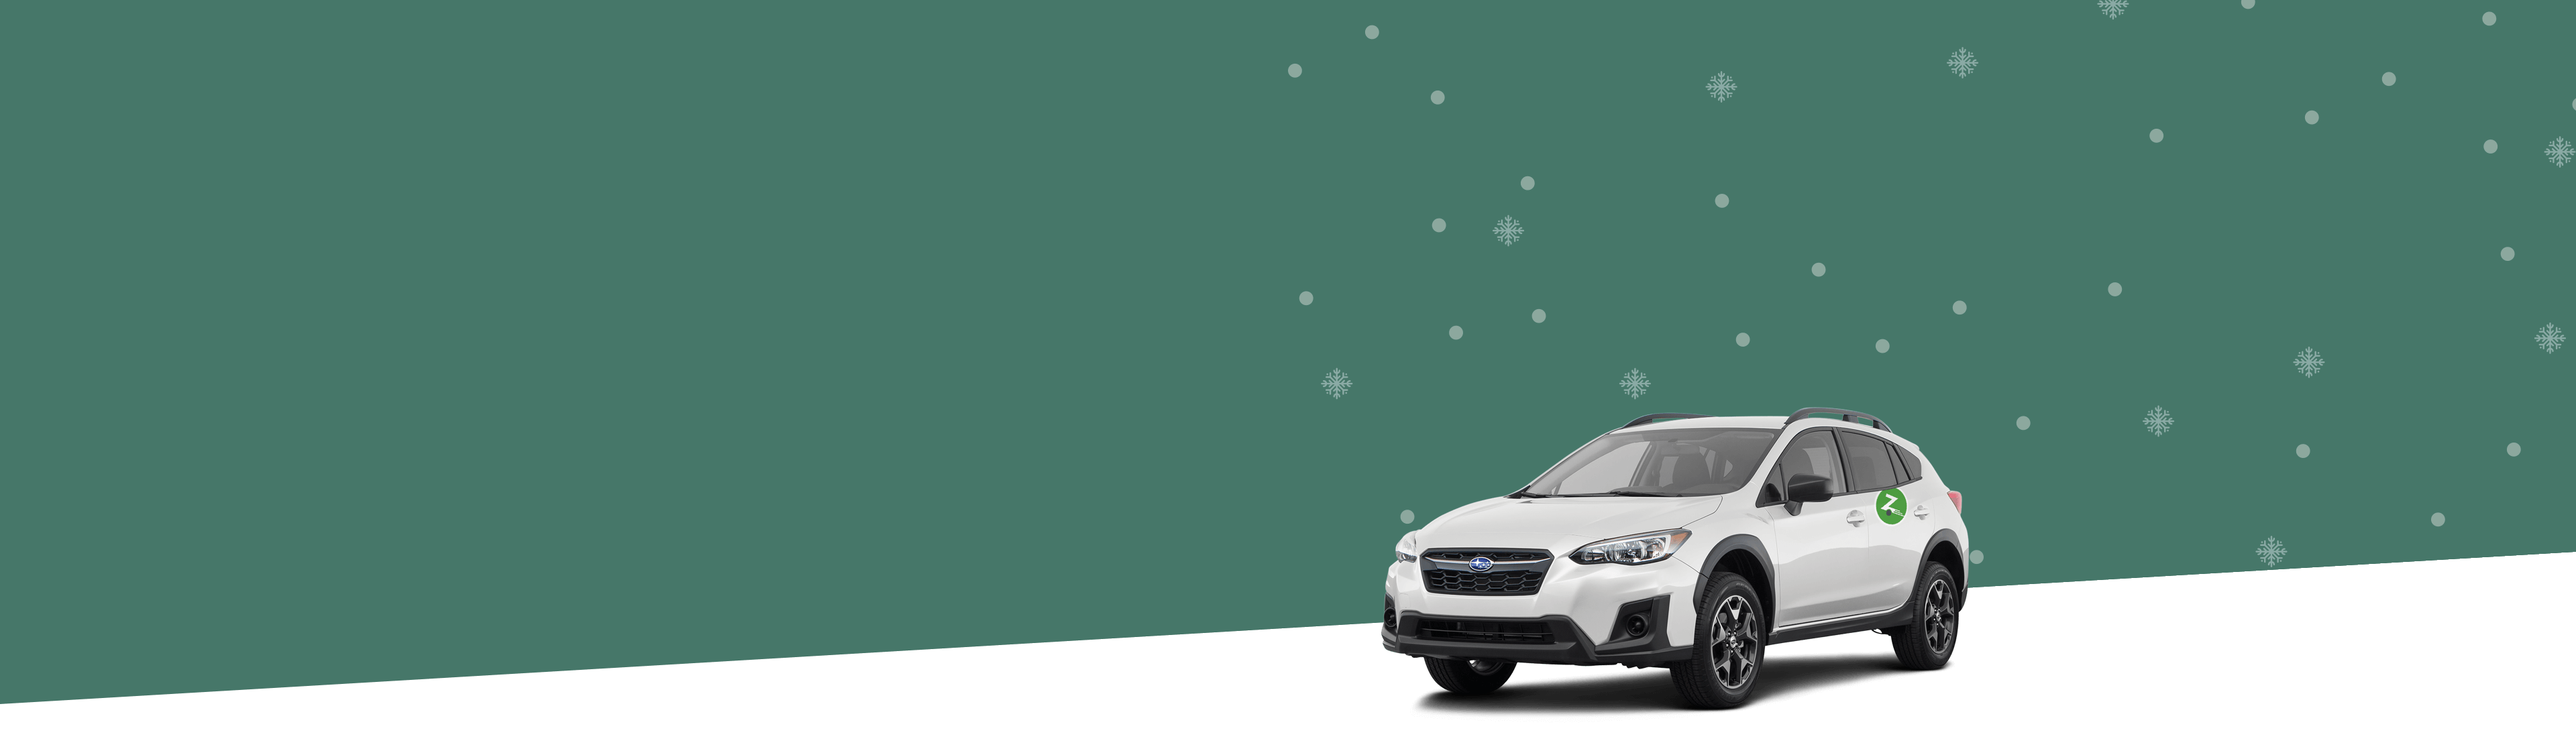 Silver car profile over a green background with silver snowflakes